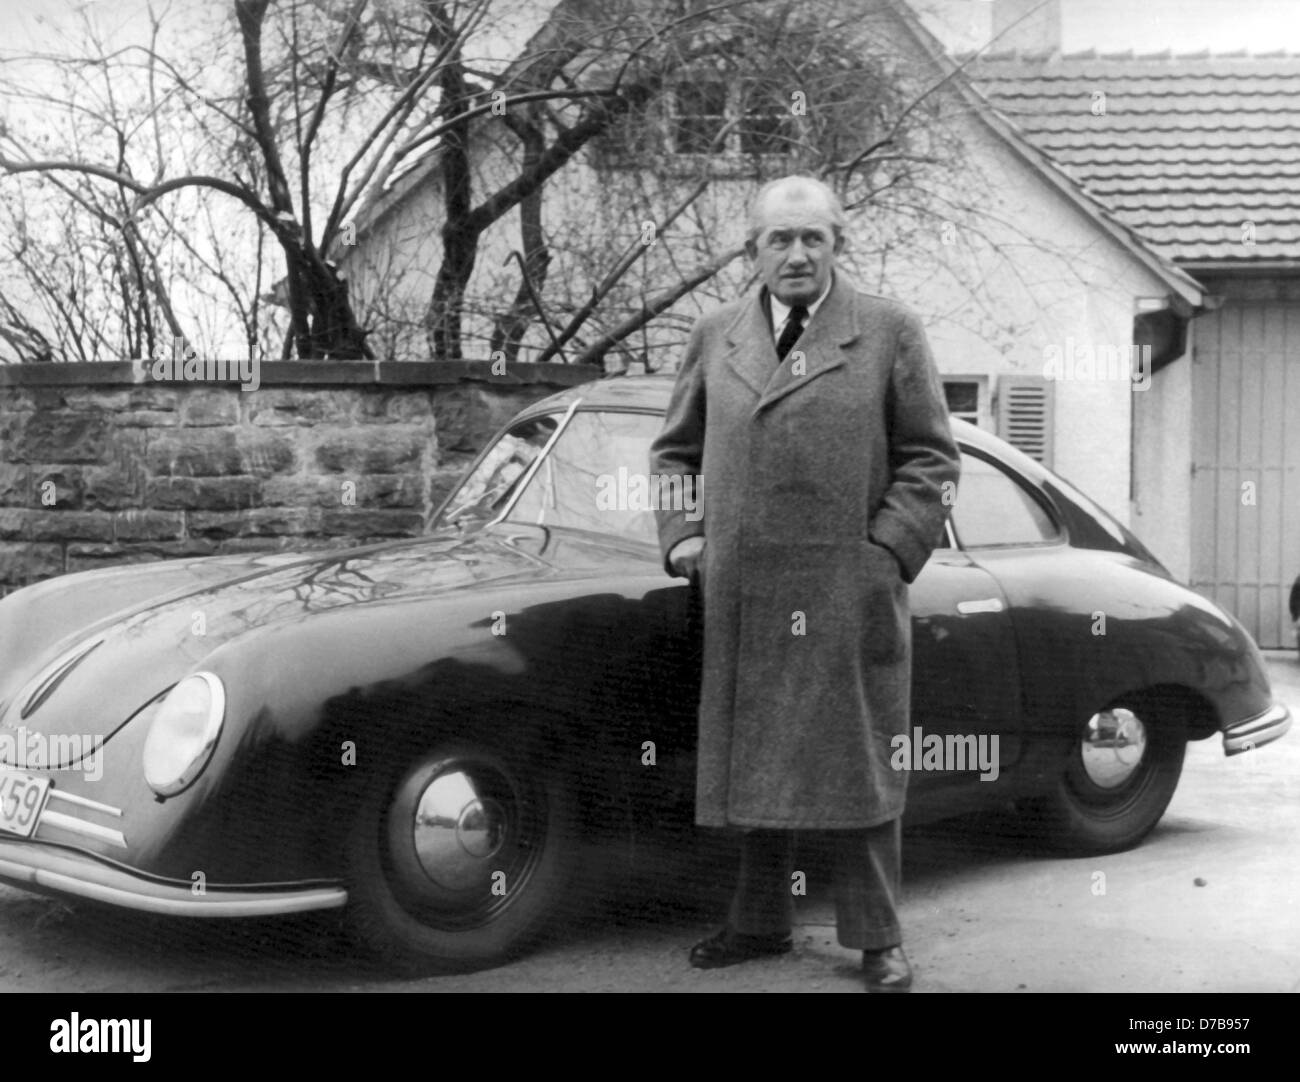 dr ferdinand porsche stockfotos dr ferdinand porsche bilder alamy. Black Bedroom Furniture Sets. Home Design Ideas